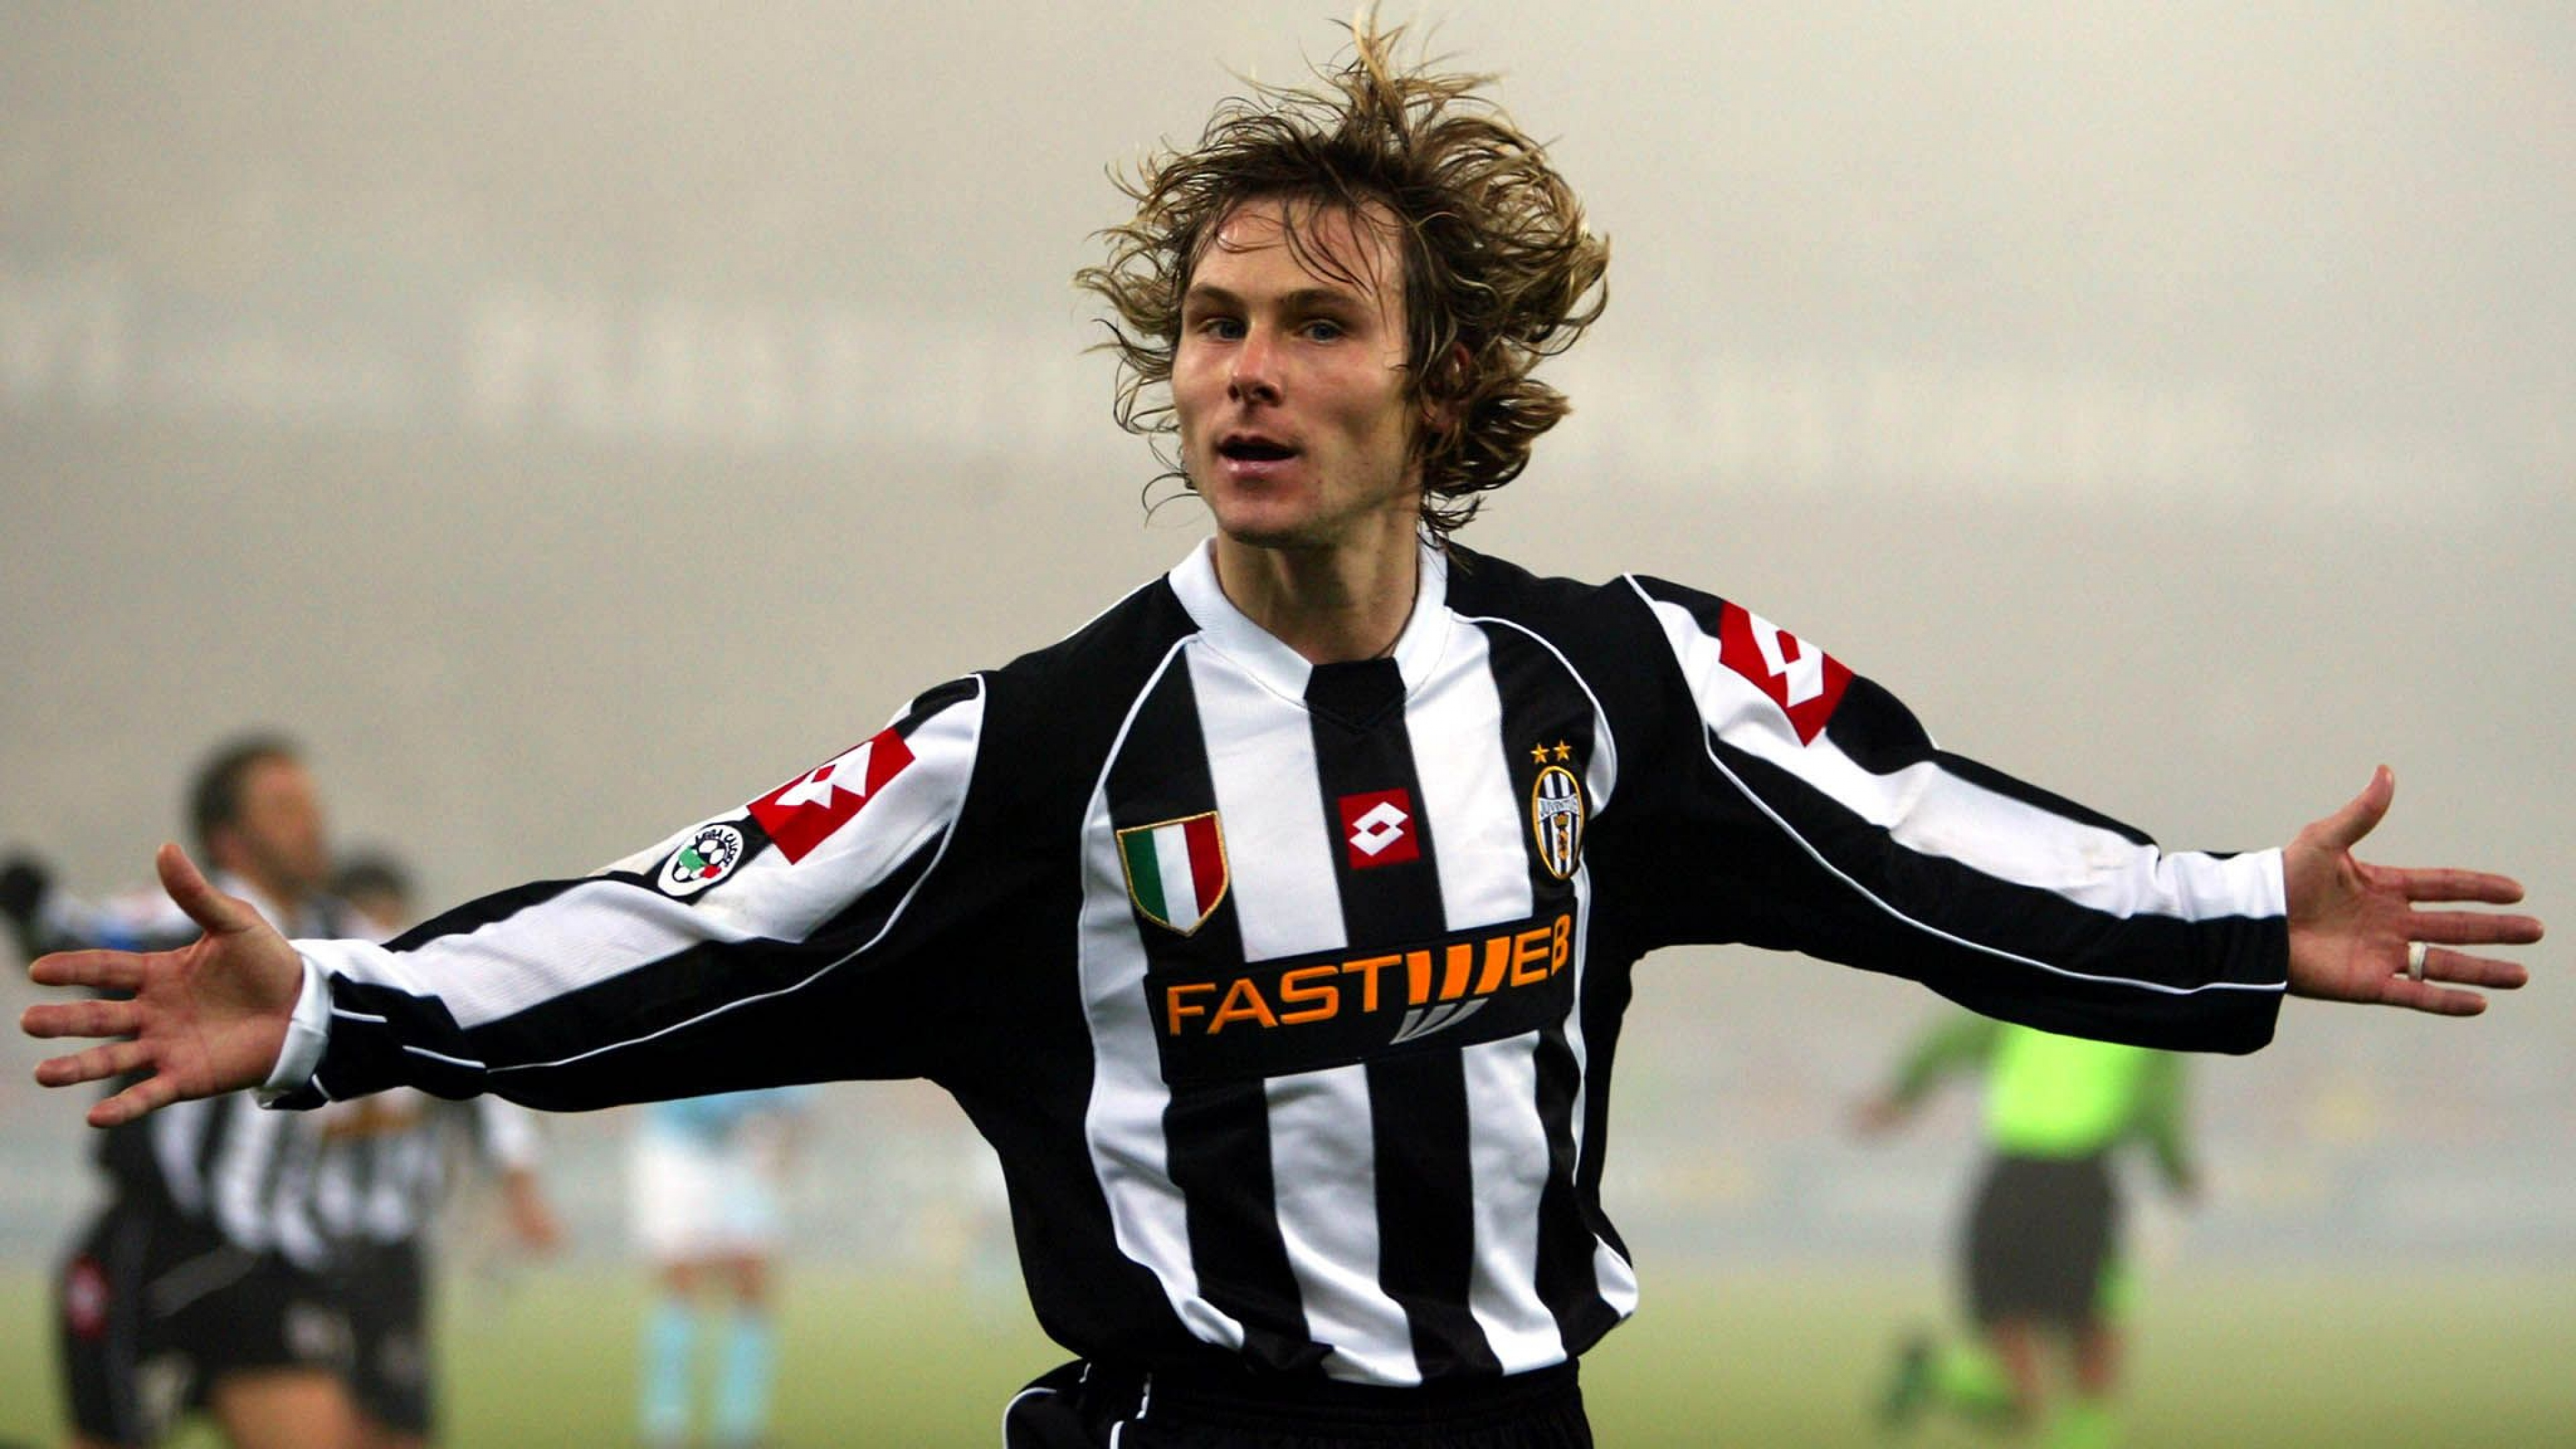 Pavel Nedved Has Come Out Of Retirement At 45